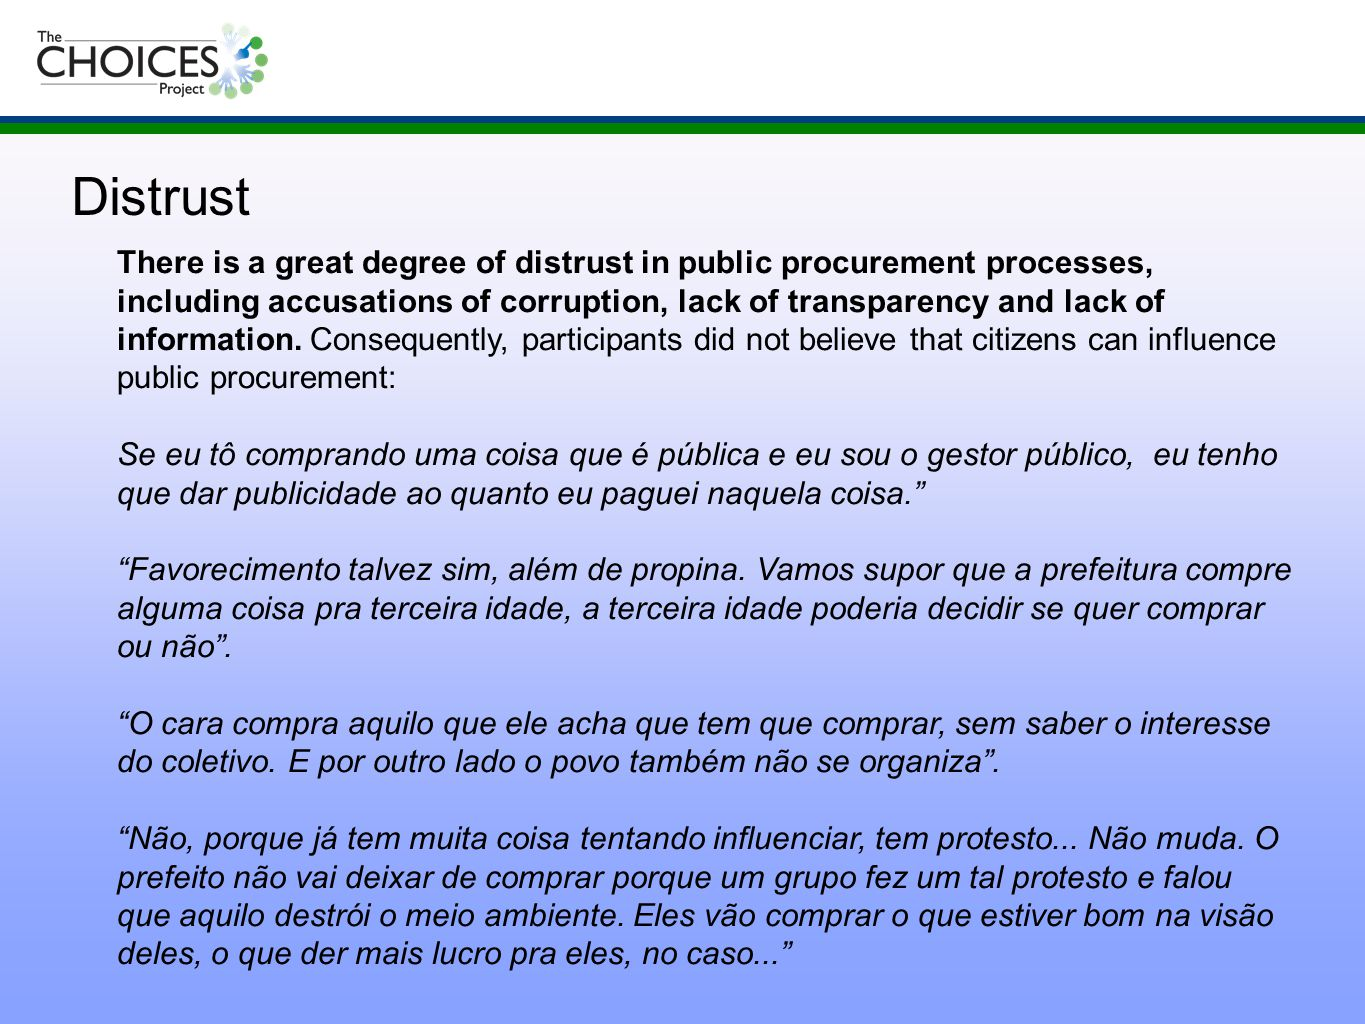 There is a great degree of distrust in public procurement processes, including accusations of corruption, lack of transparency and lack of information.